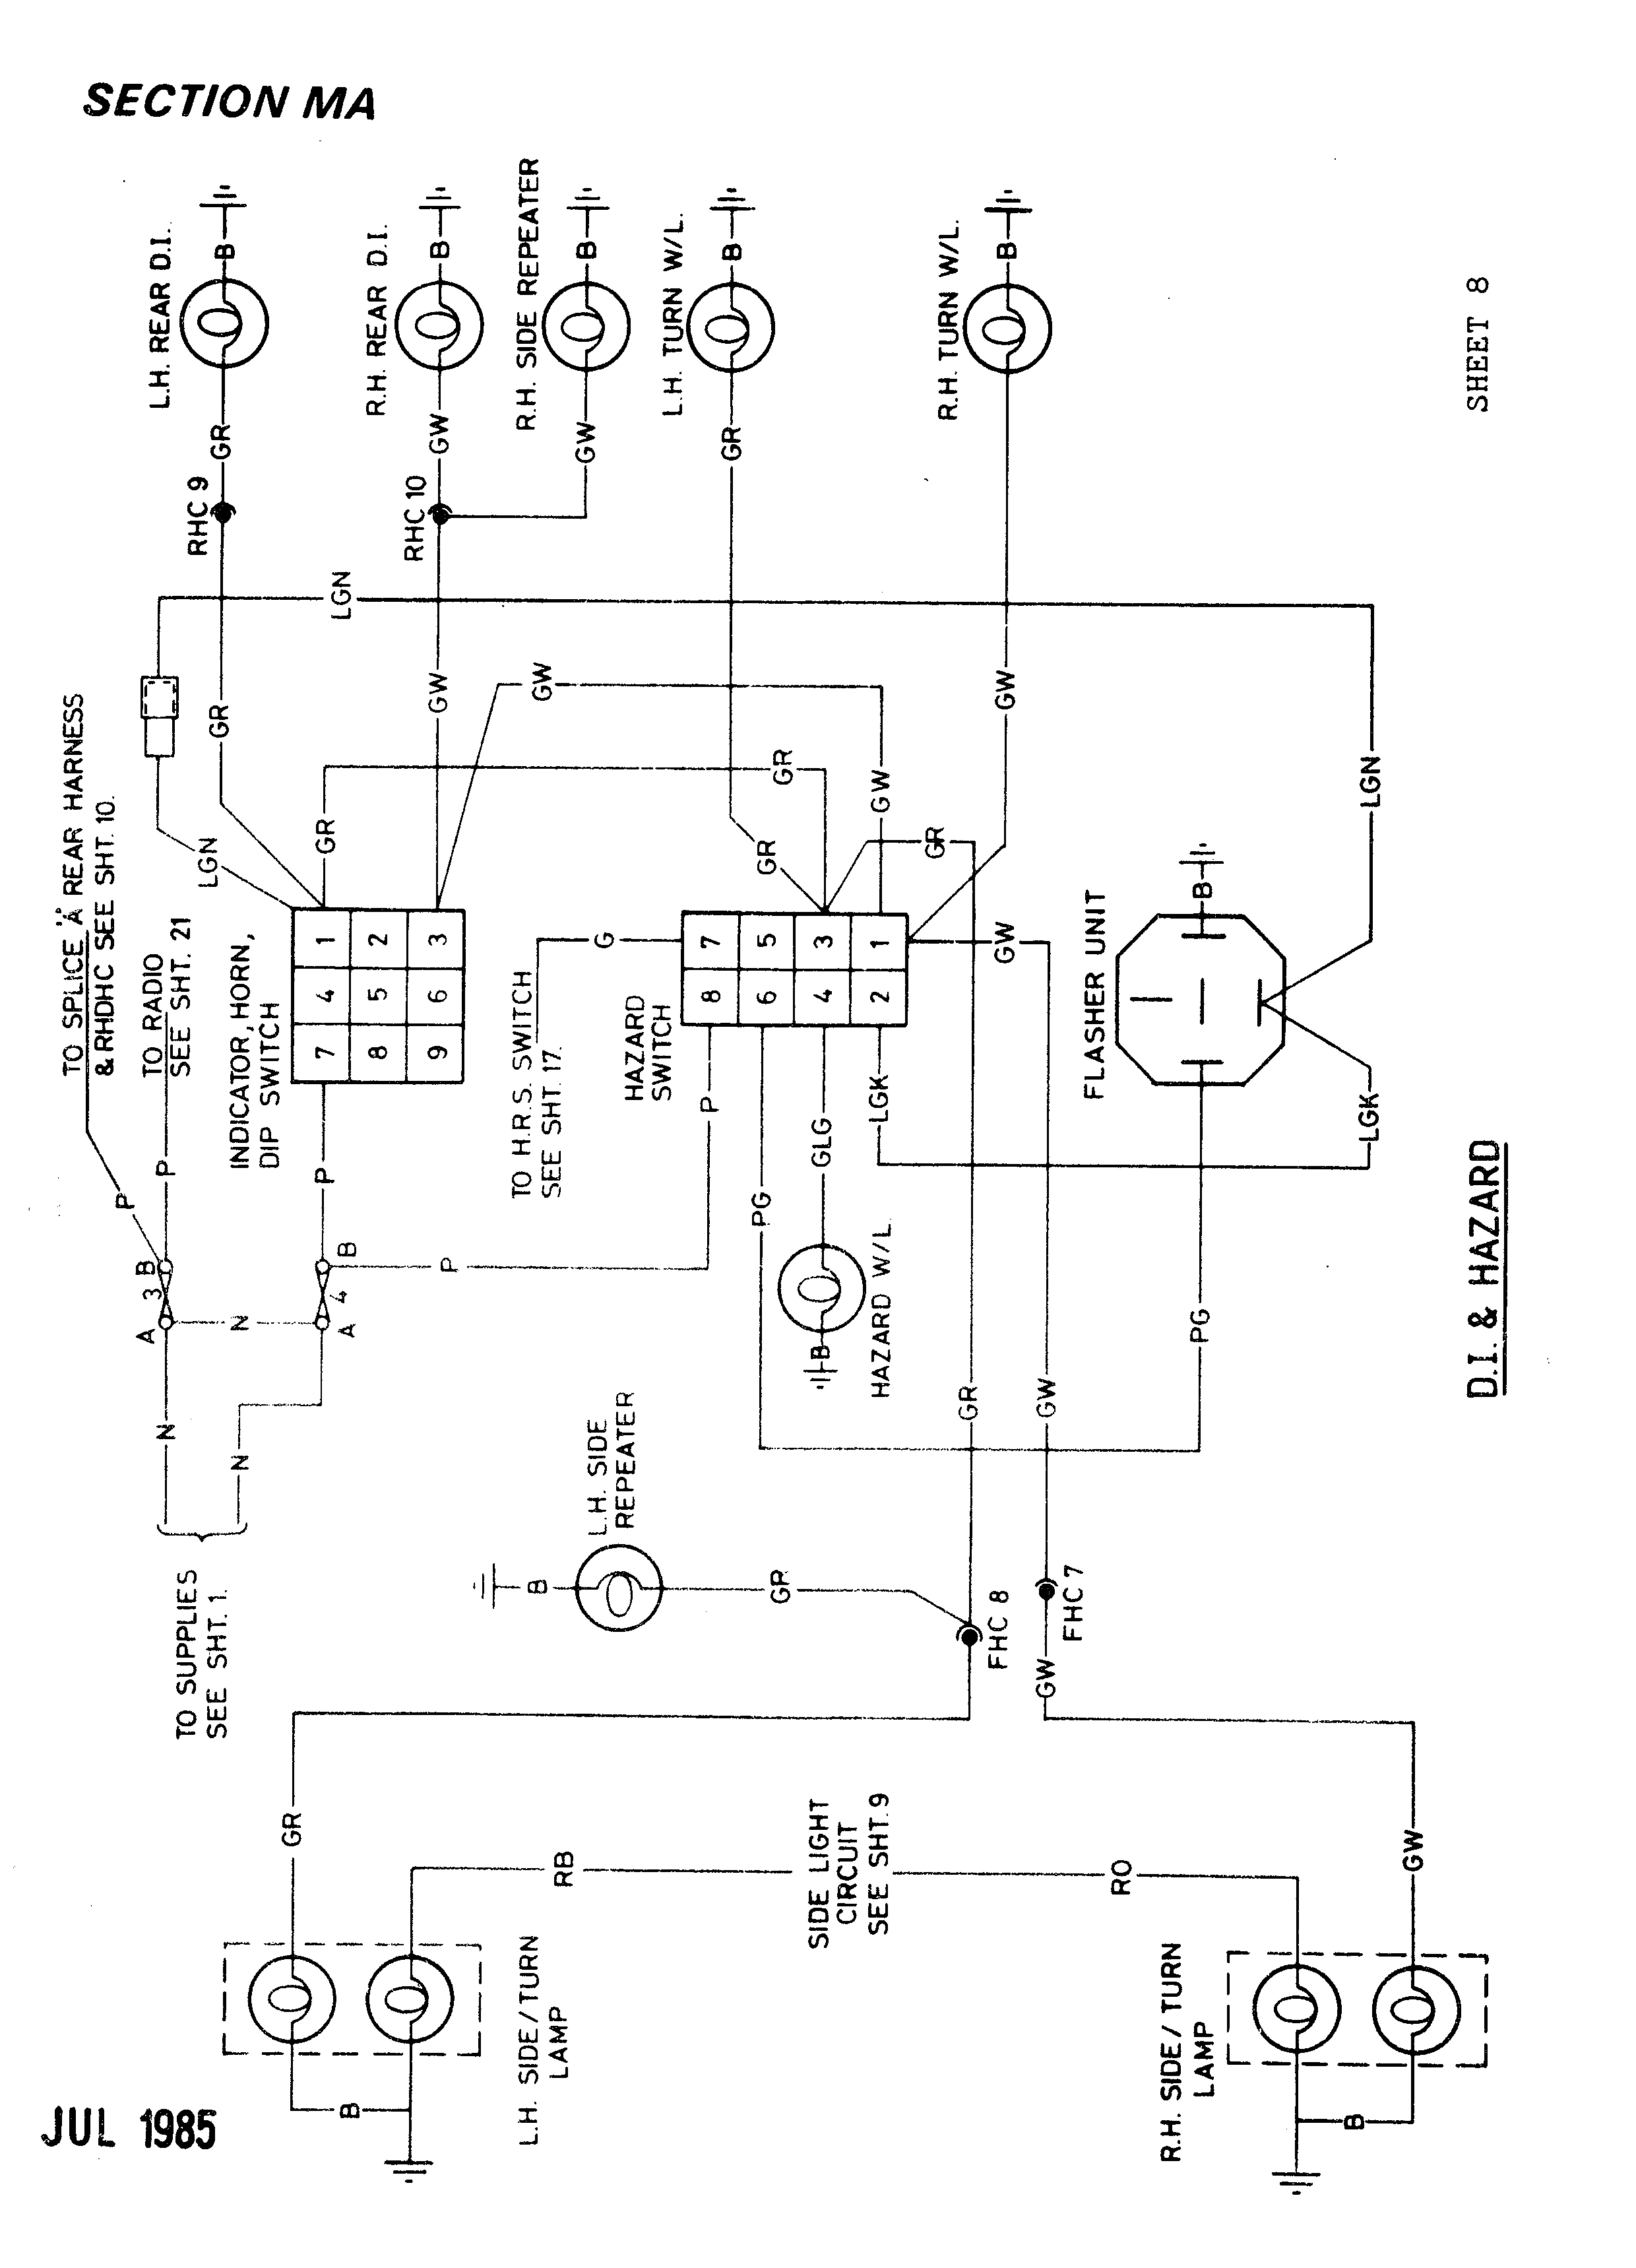 Lotus Excel Electrical Section  Ma